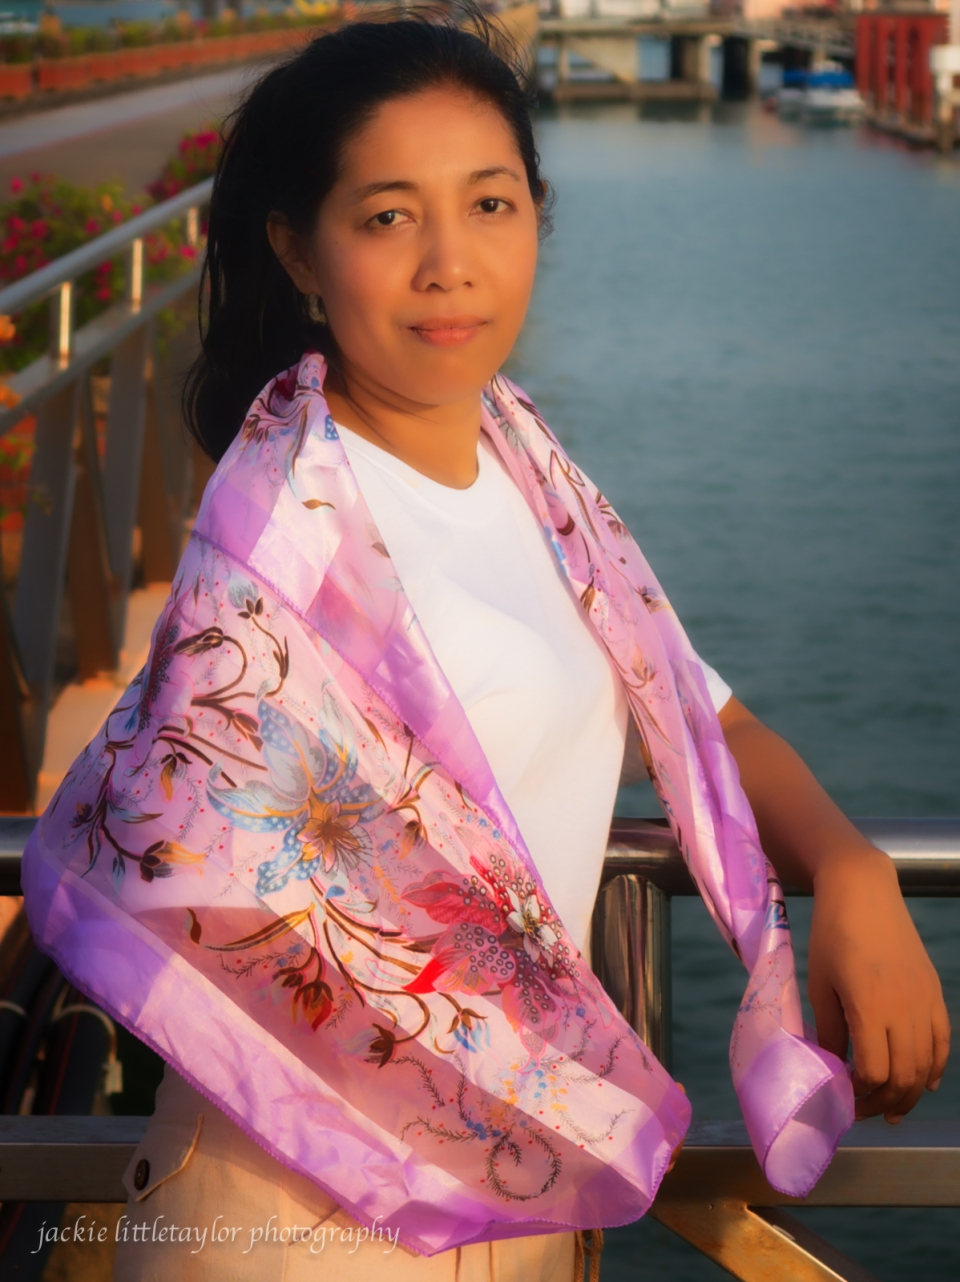 lovely mature Thai woman at sunset and water